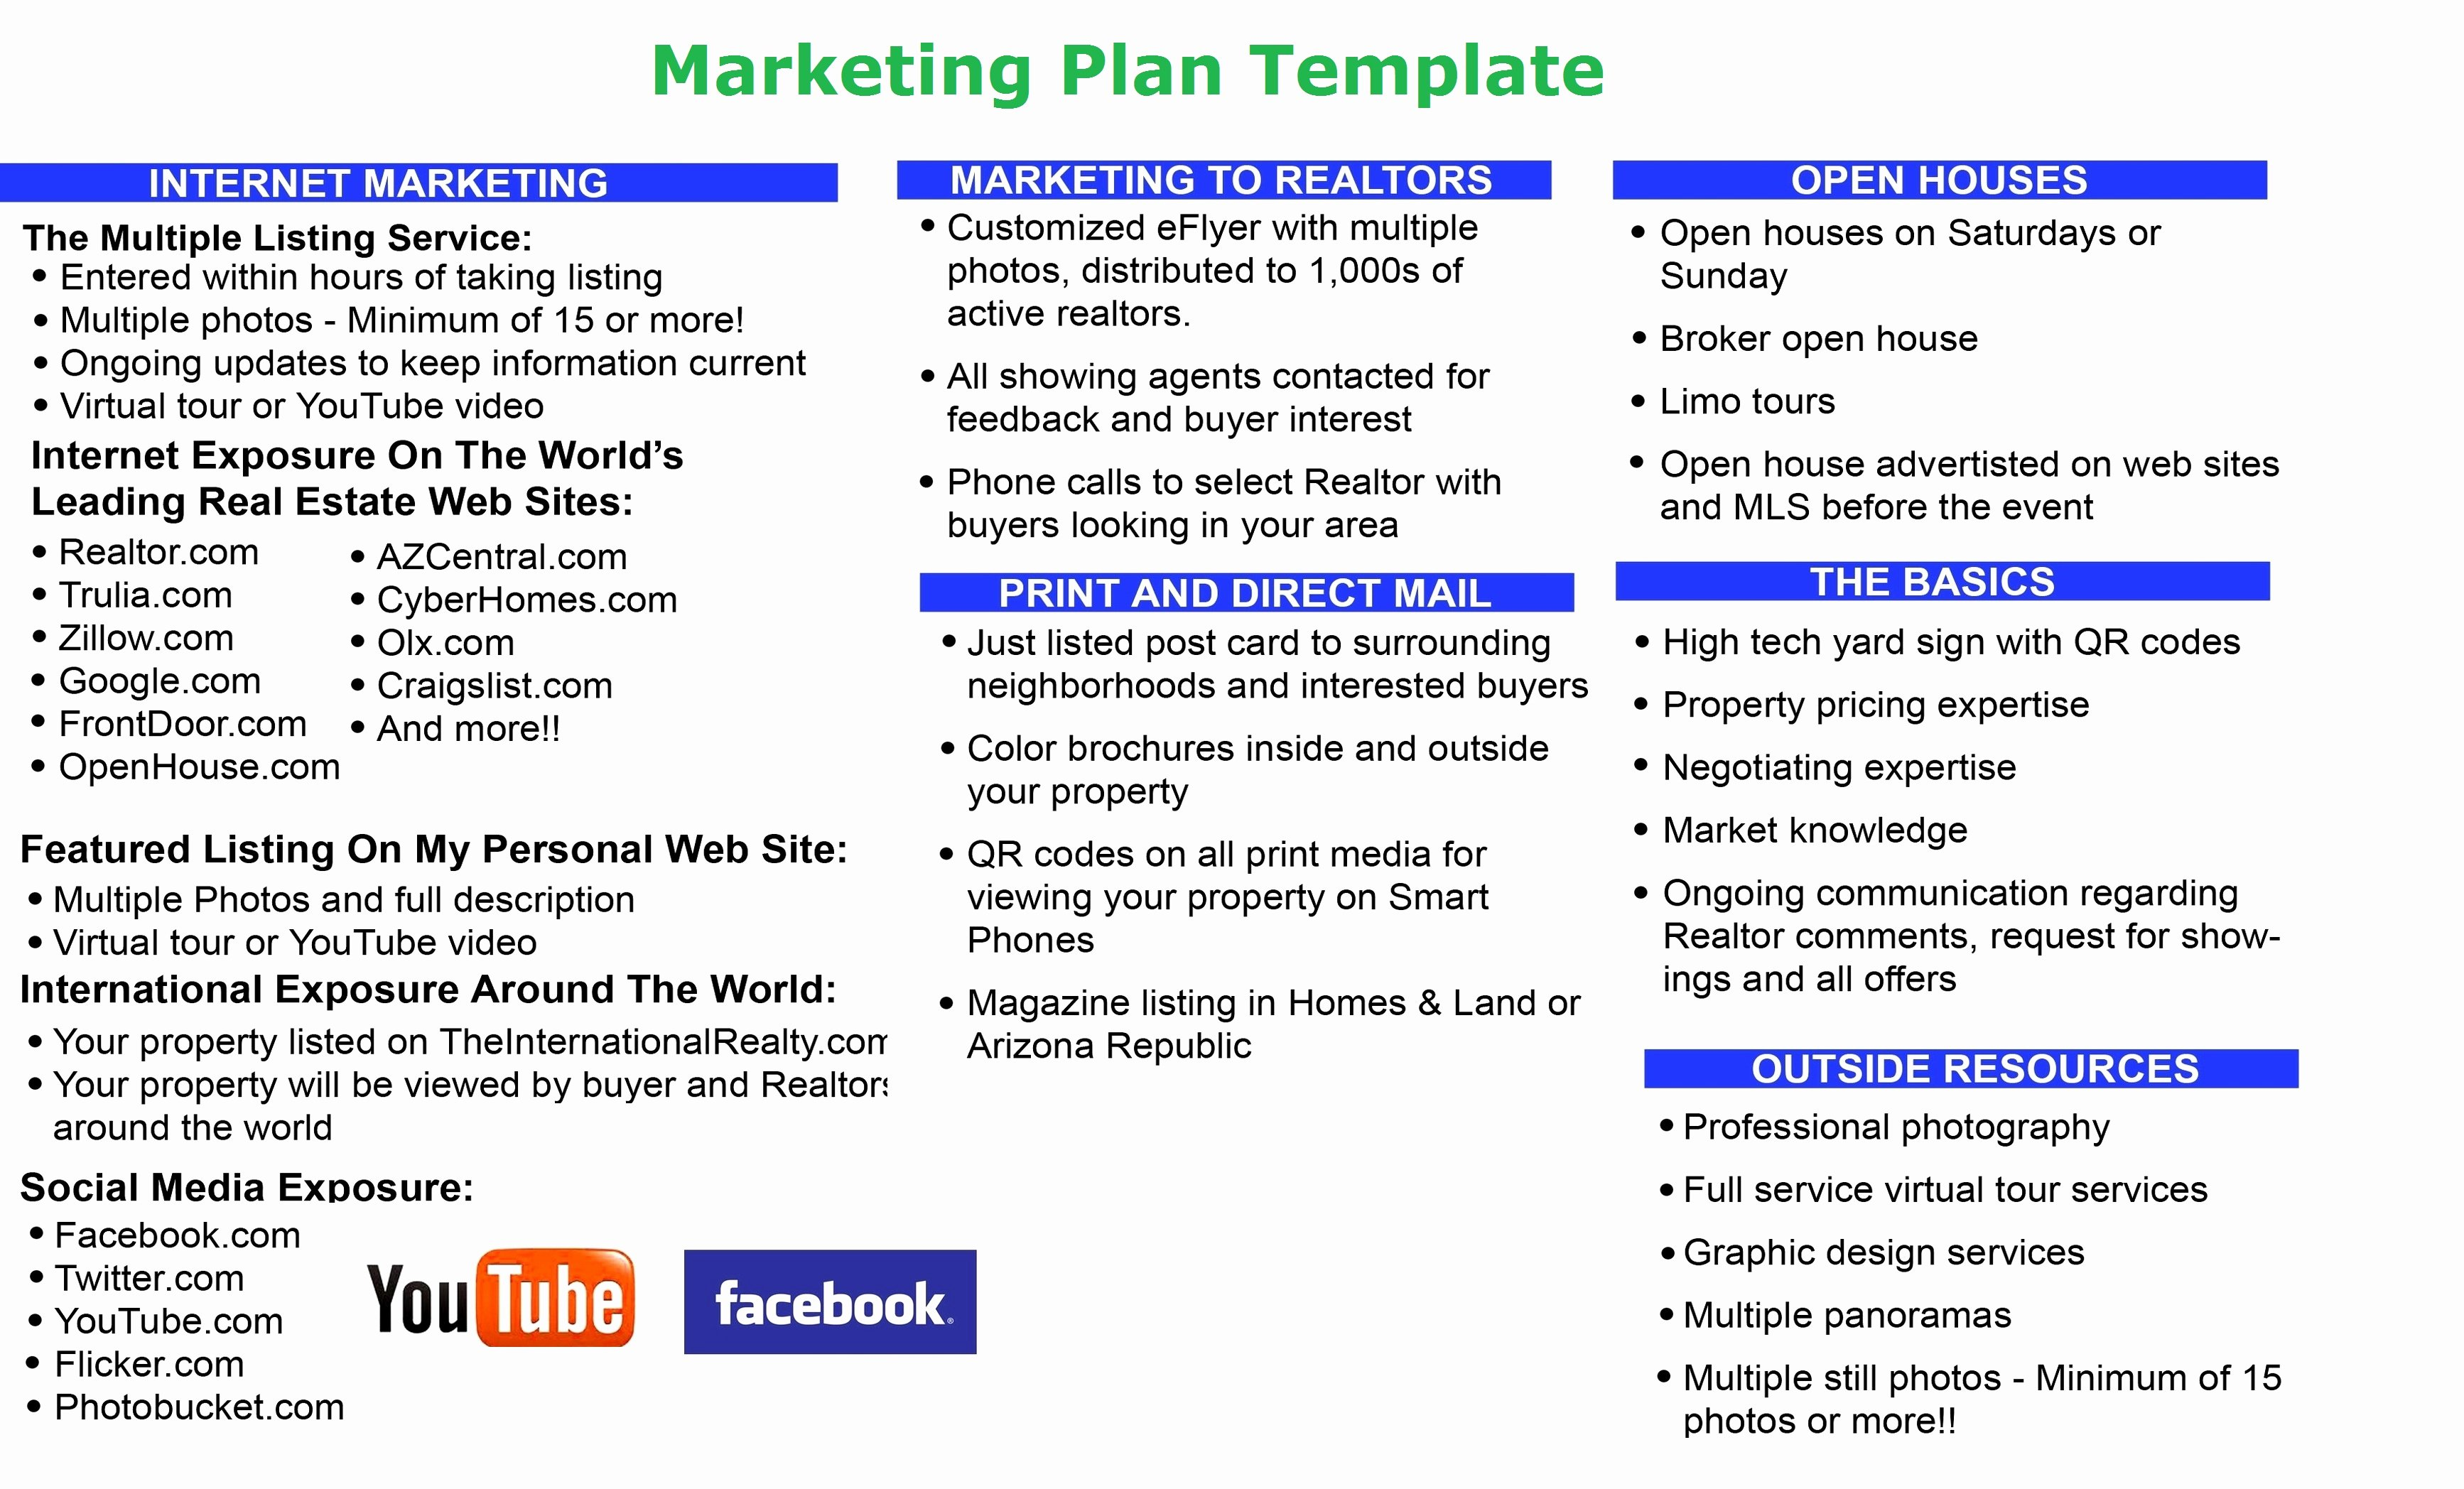 Marketing Plan Outline Template Inspirational Marketing Plan